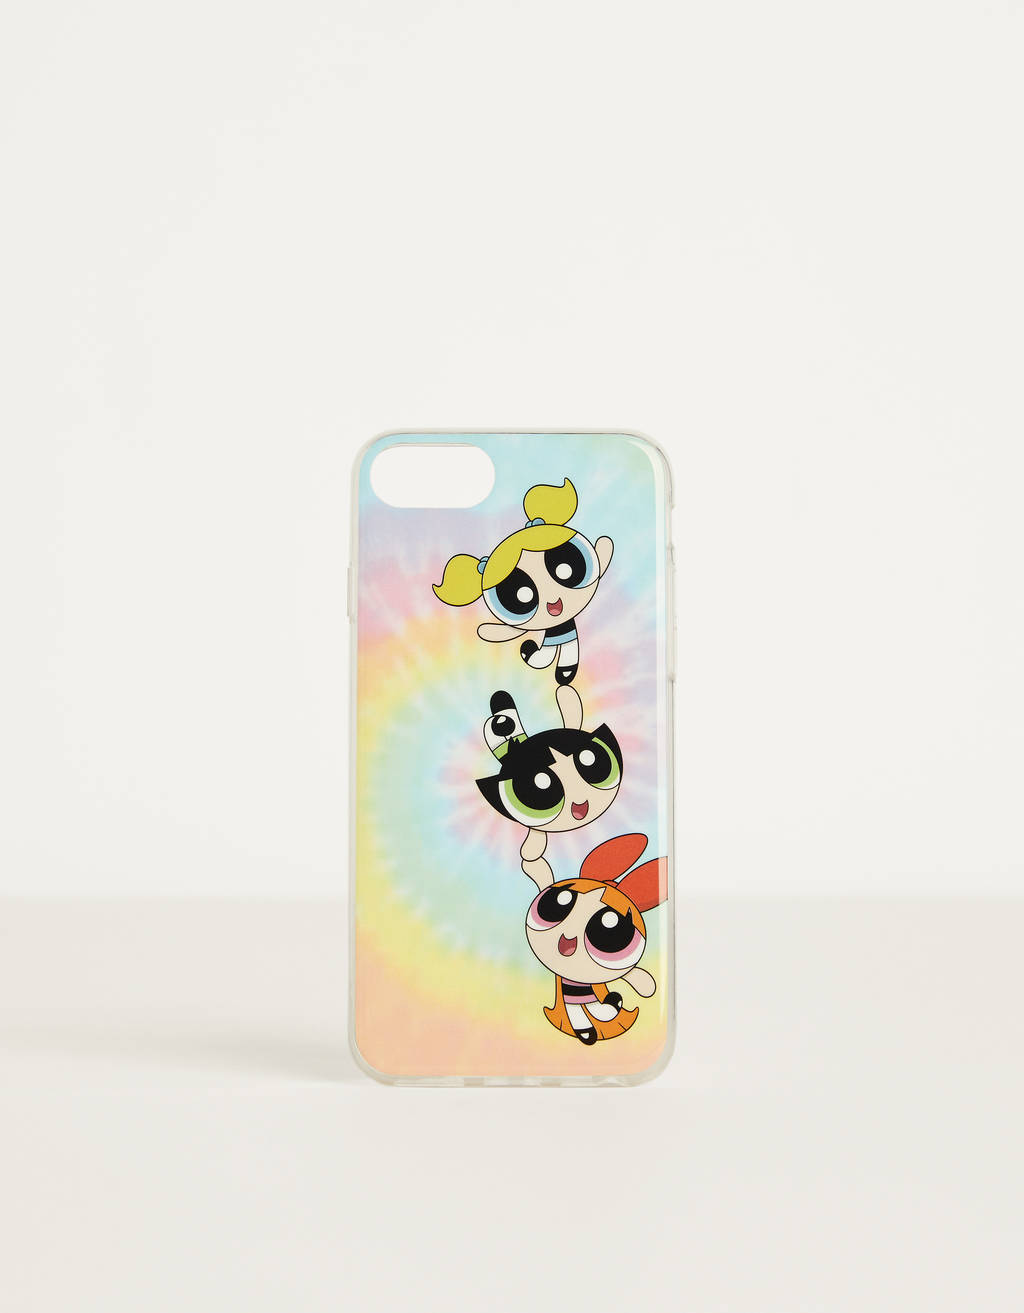 Cover Le Superchicche x Bershka per iPhone 6 / 6S / 7 / 8